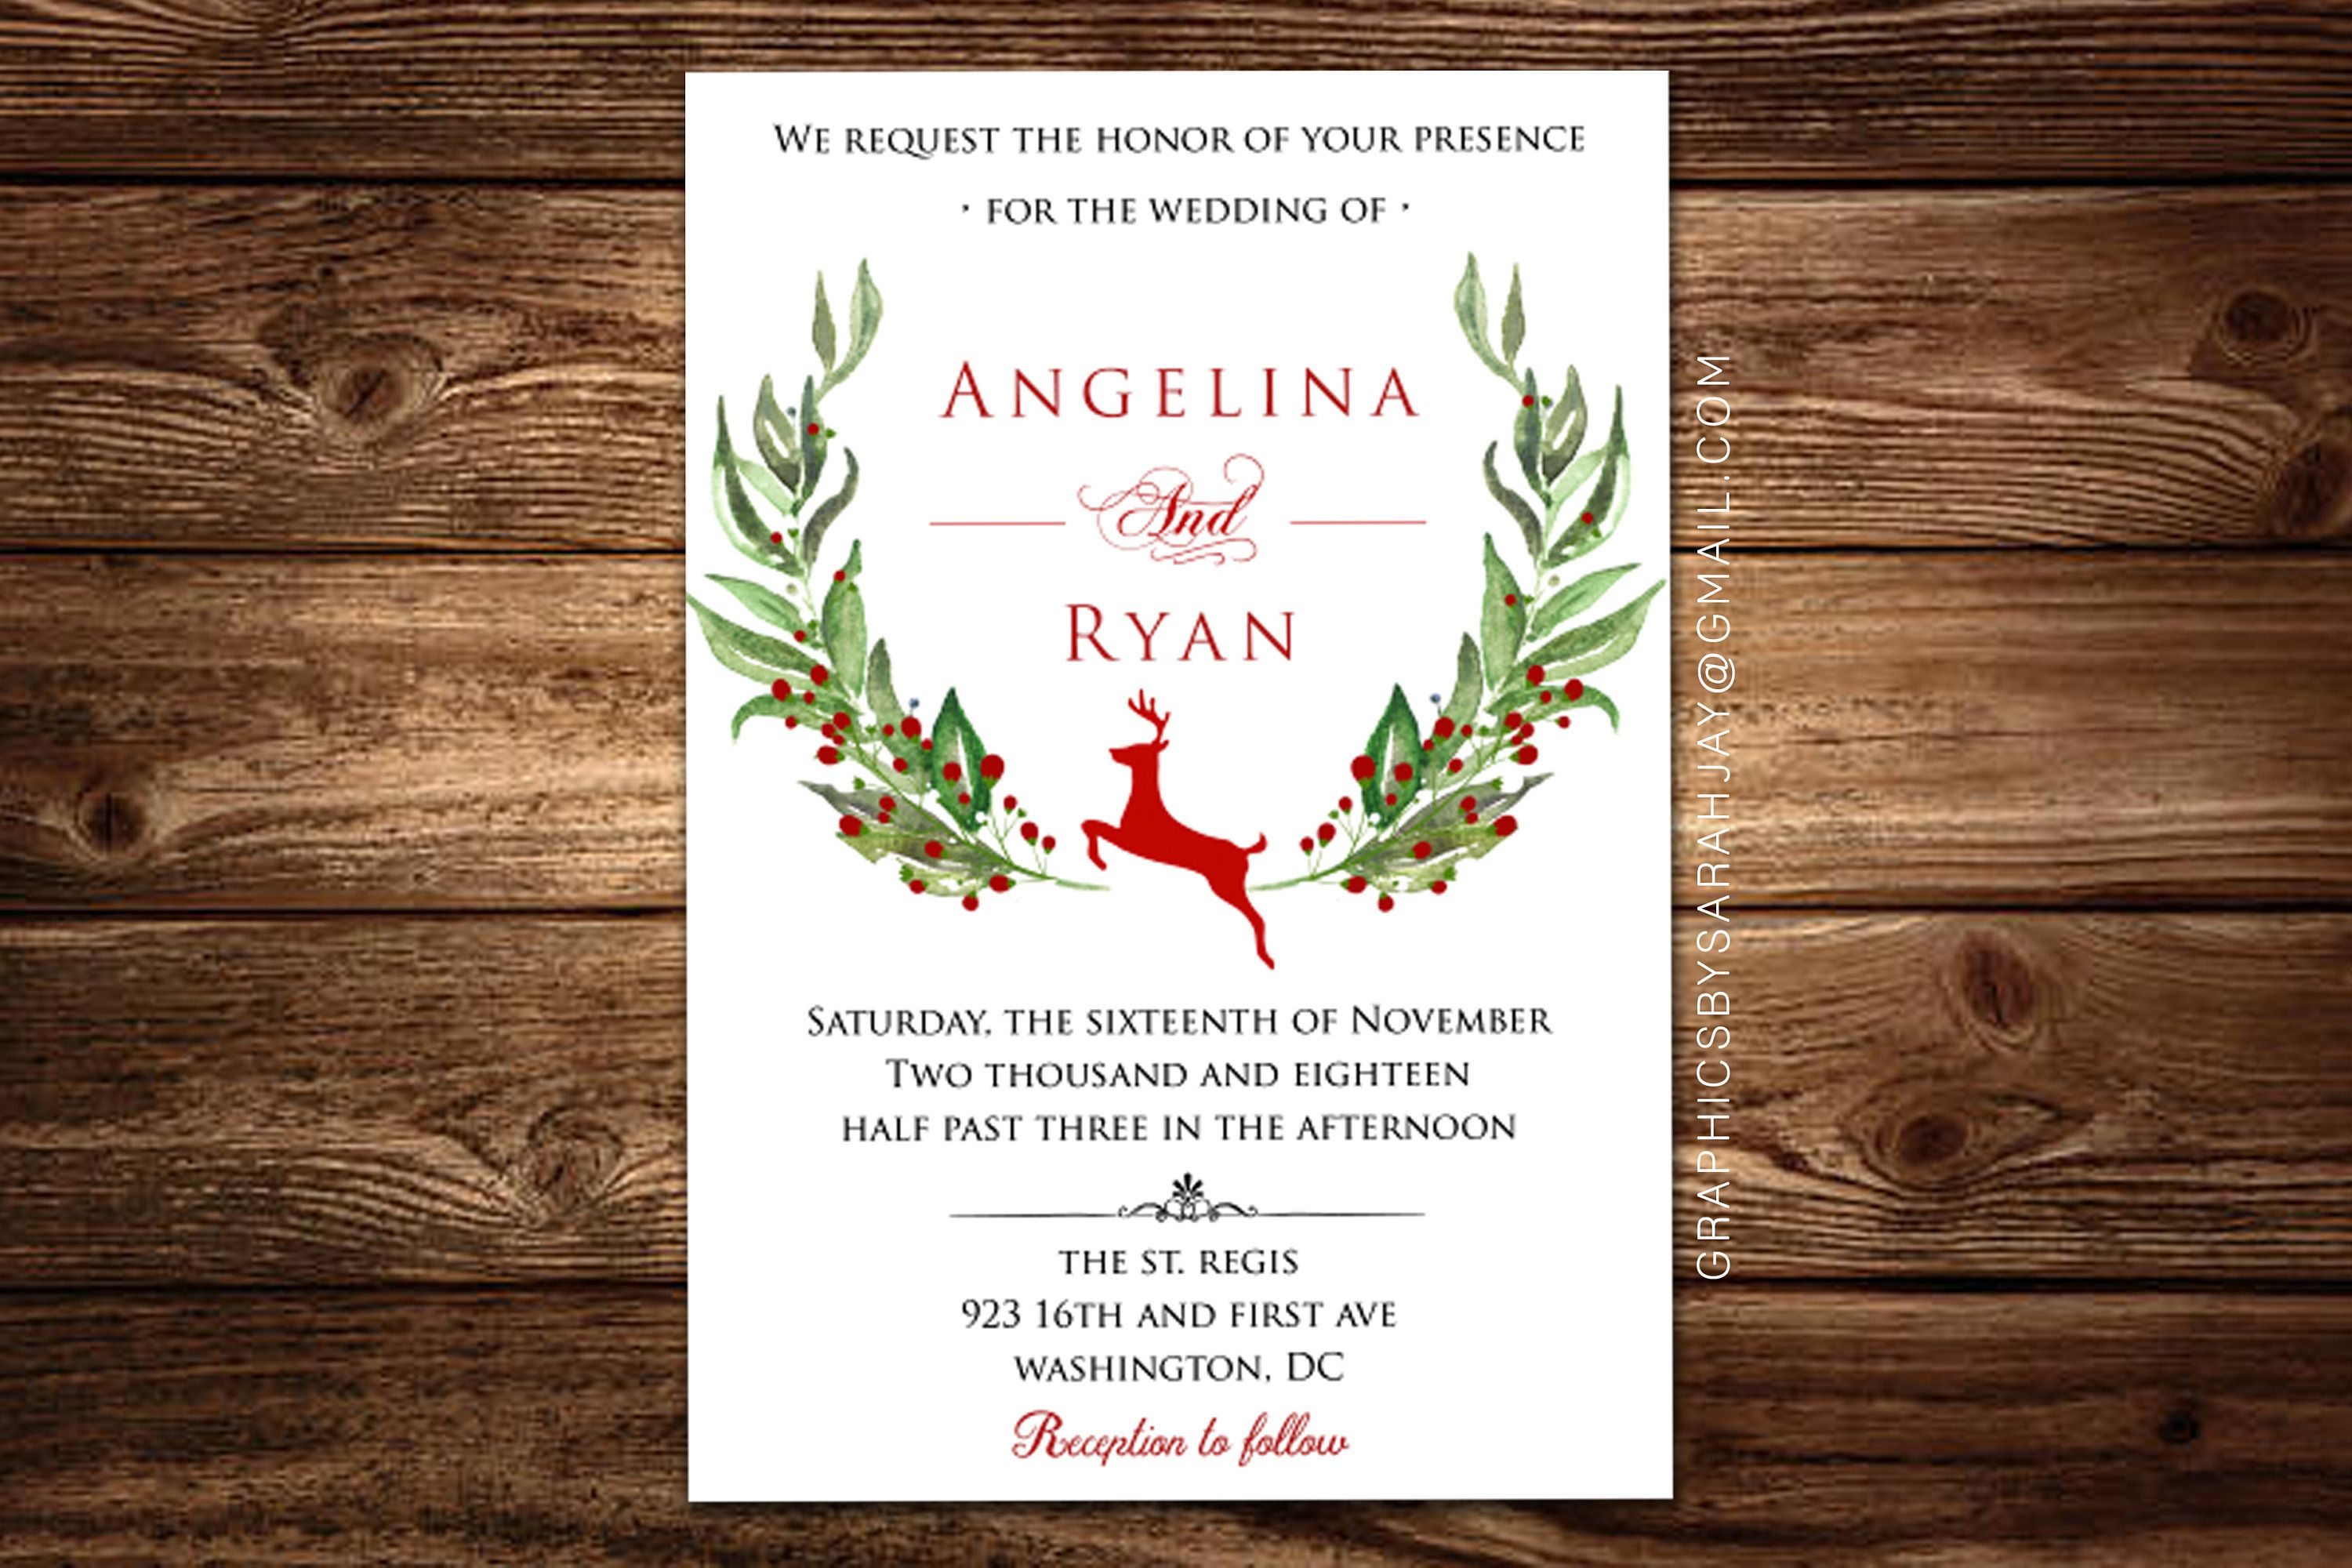 Rustic Christmas Wedding Invitation Card Holiday Party Invite Customizable Baby Shower Invite Seasonal Winter Wedding Holiday Wedding Invitations Christmas Wedding Invitations Wedding Invitation Cards